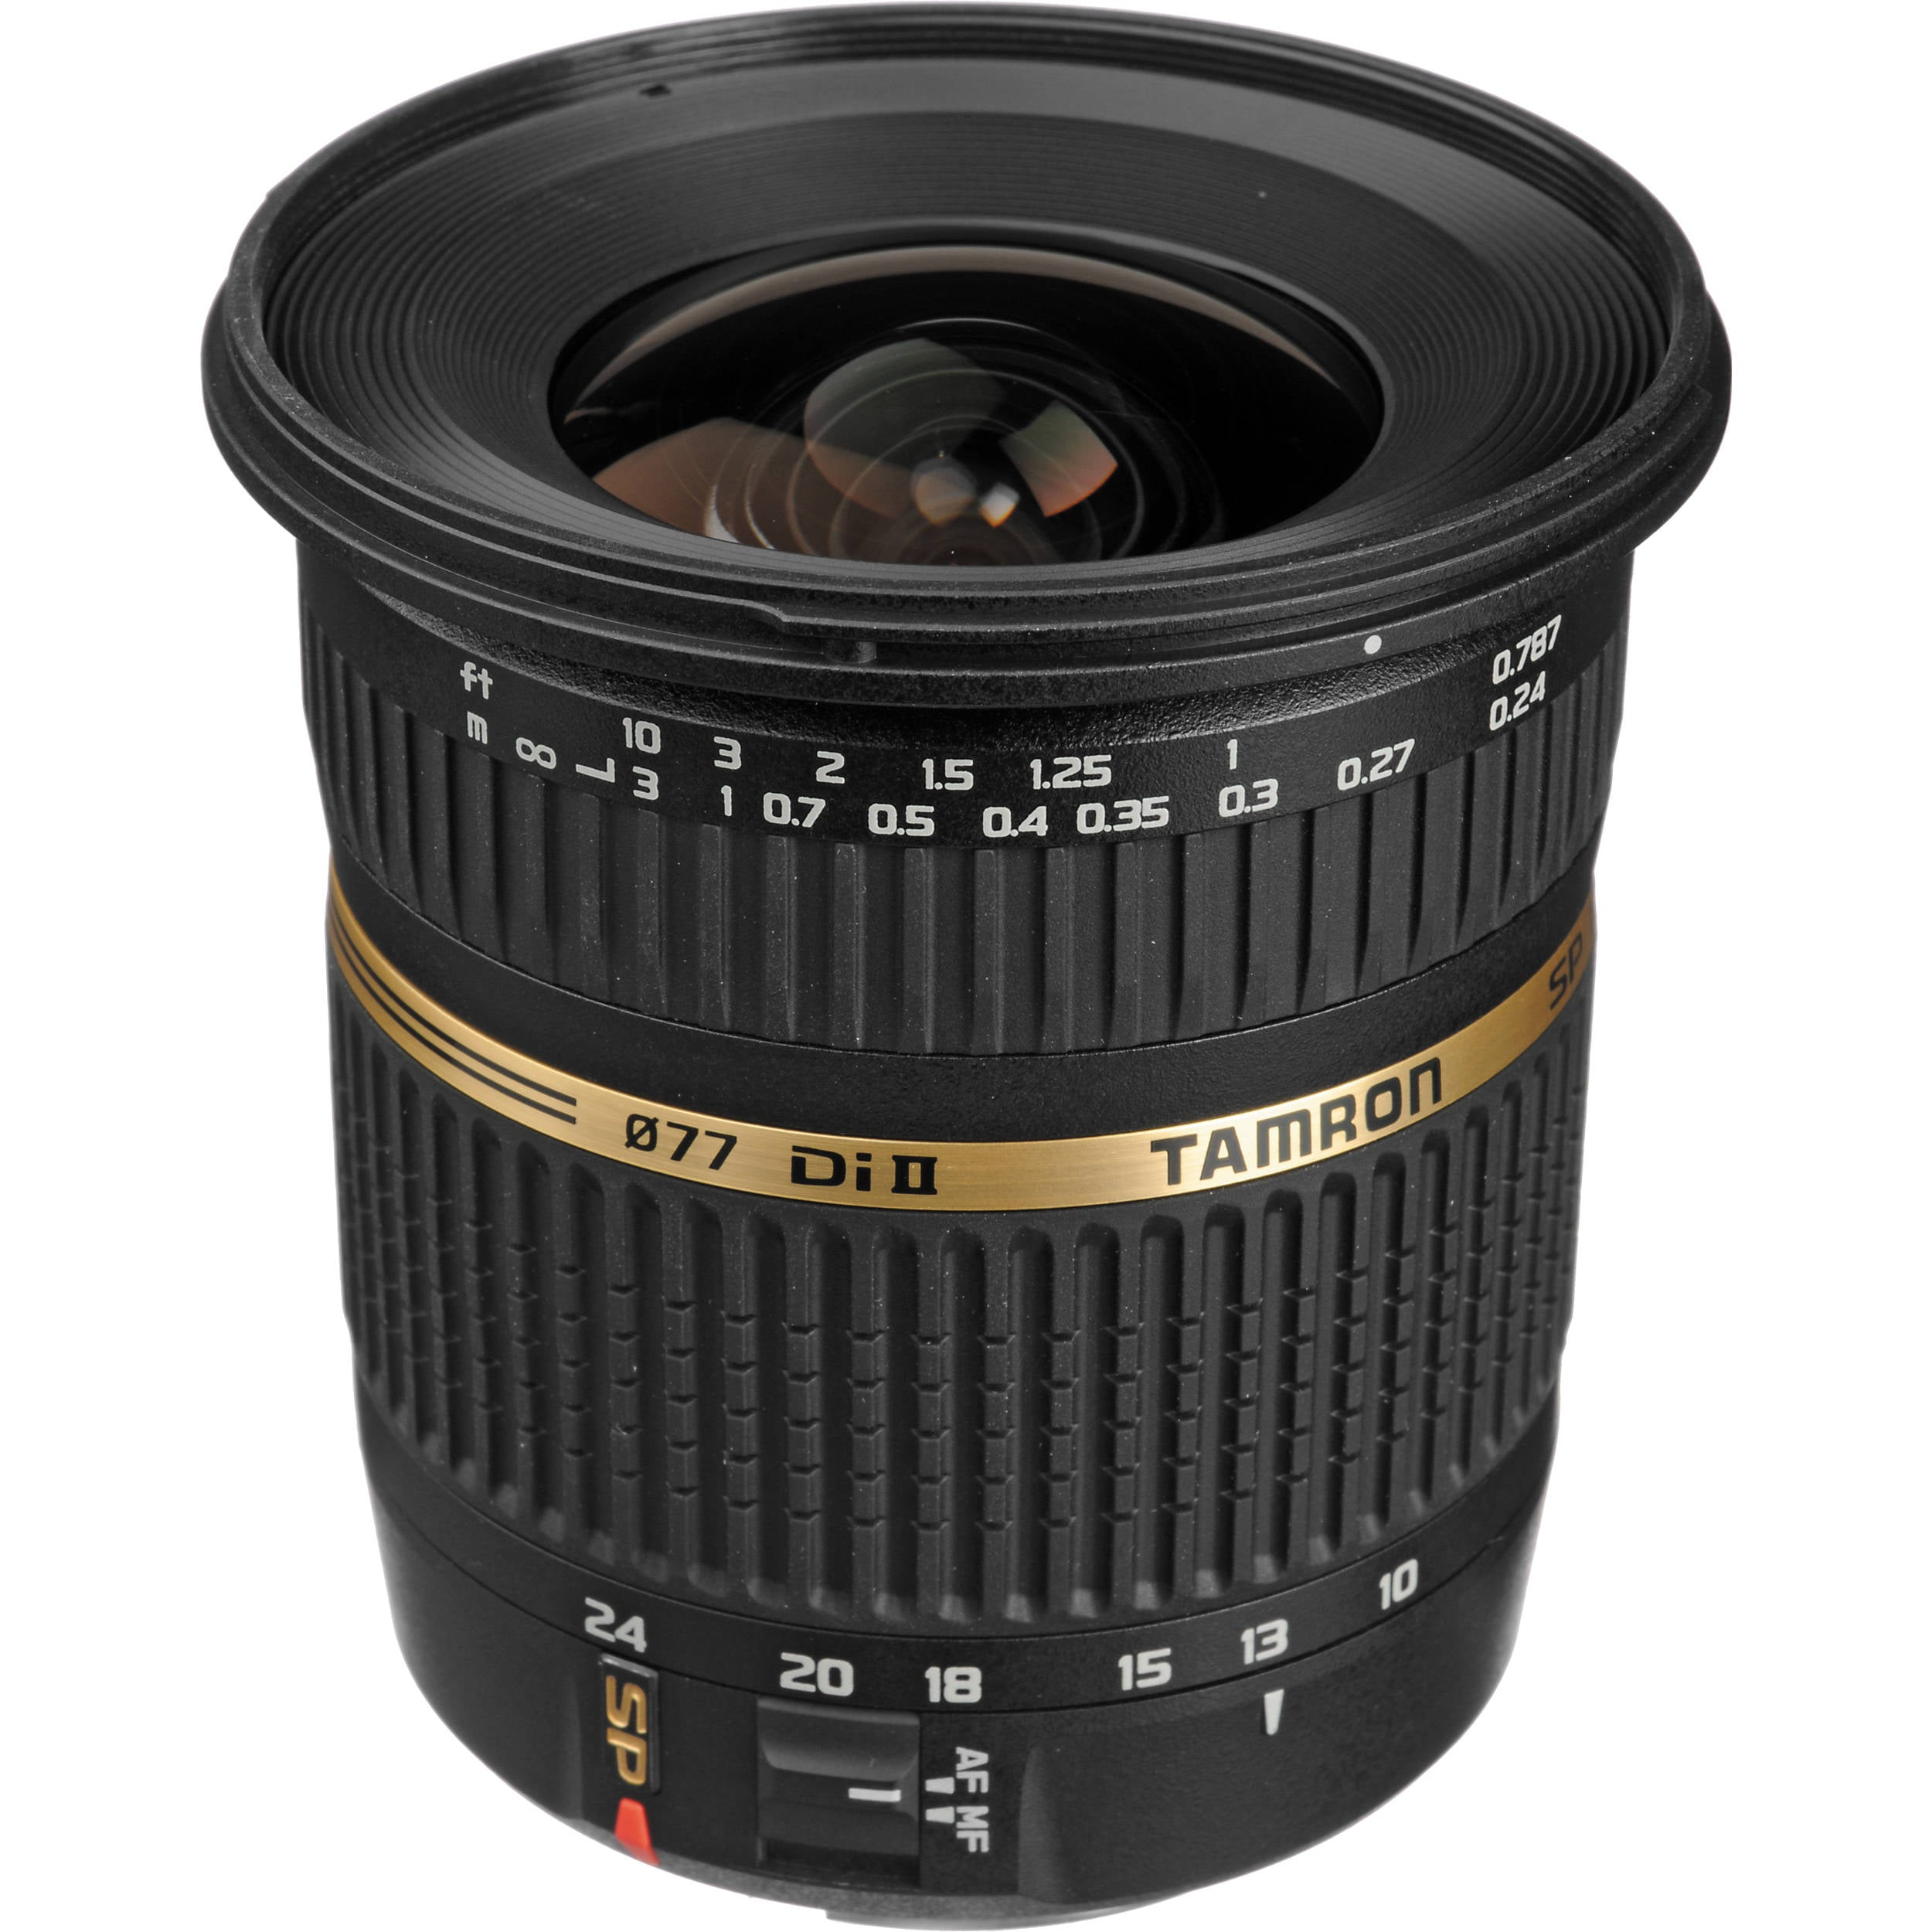 Tamron SP AF 10-24mm f/3.5-4.5 Di II LD Aspherical (IF), Canon EF-S Fit - EX-DEMO